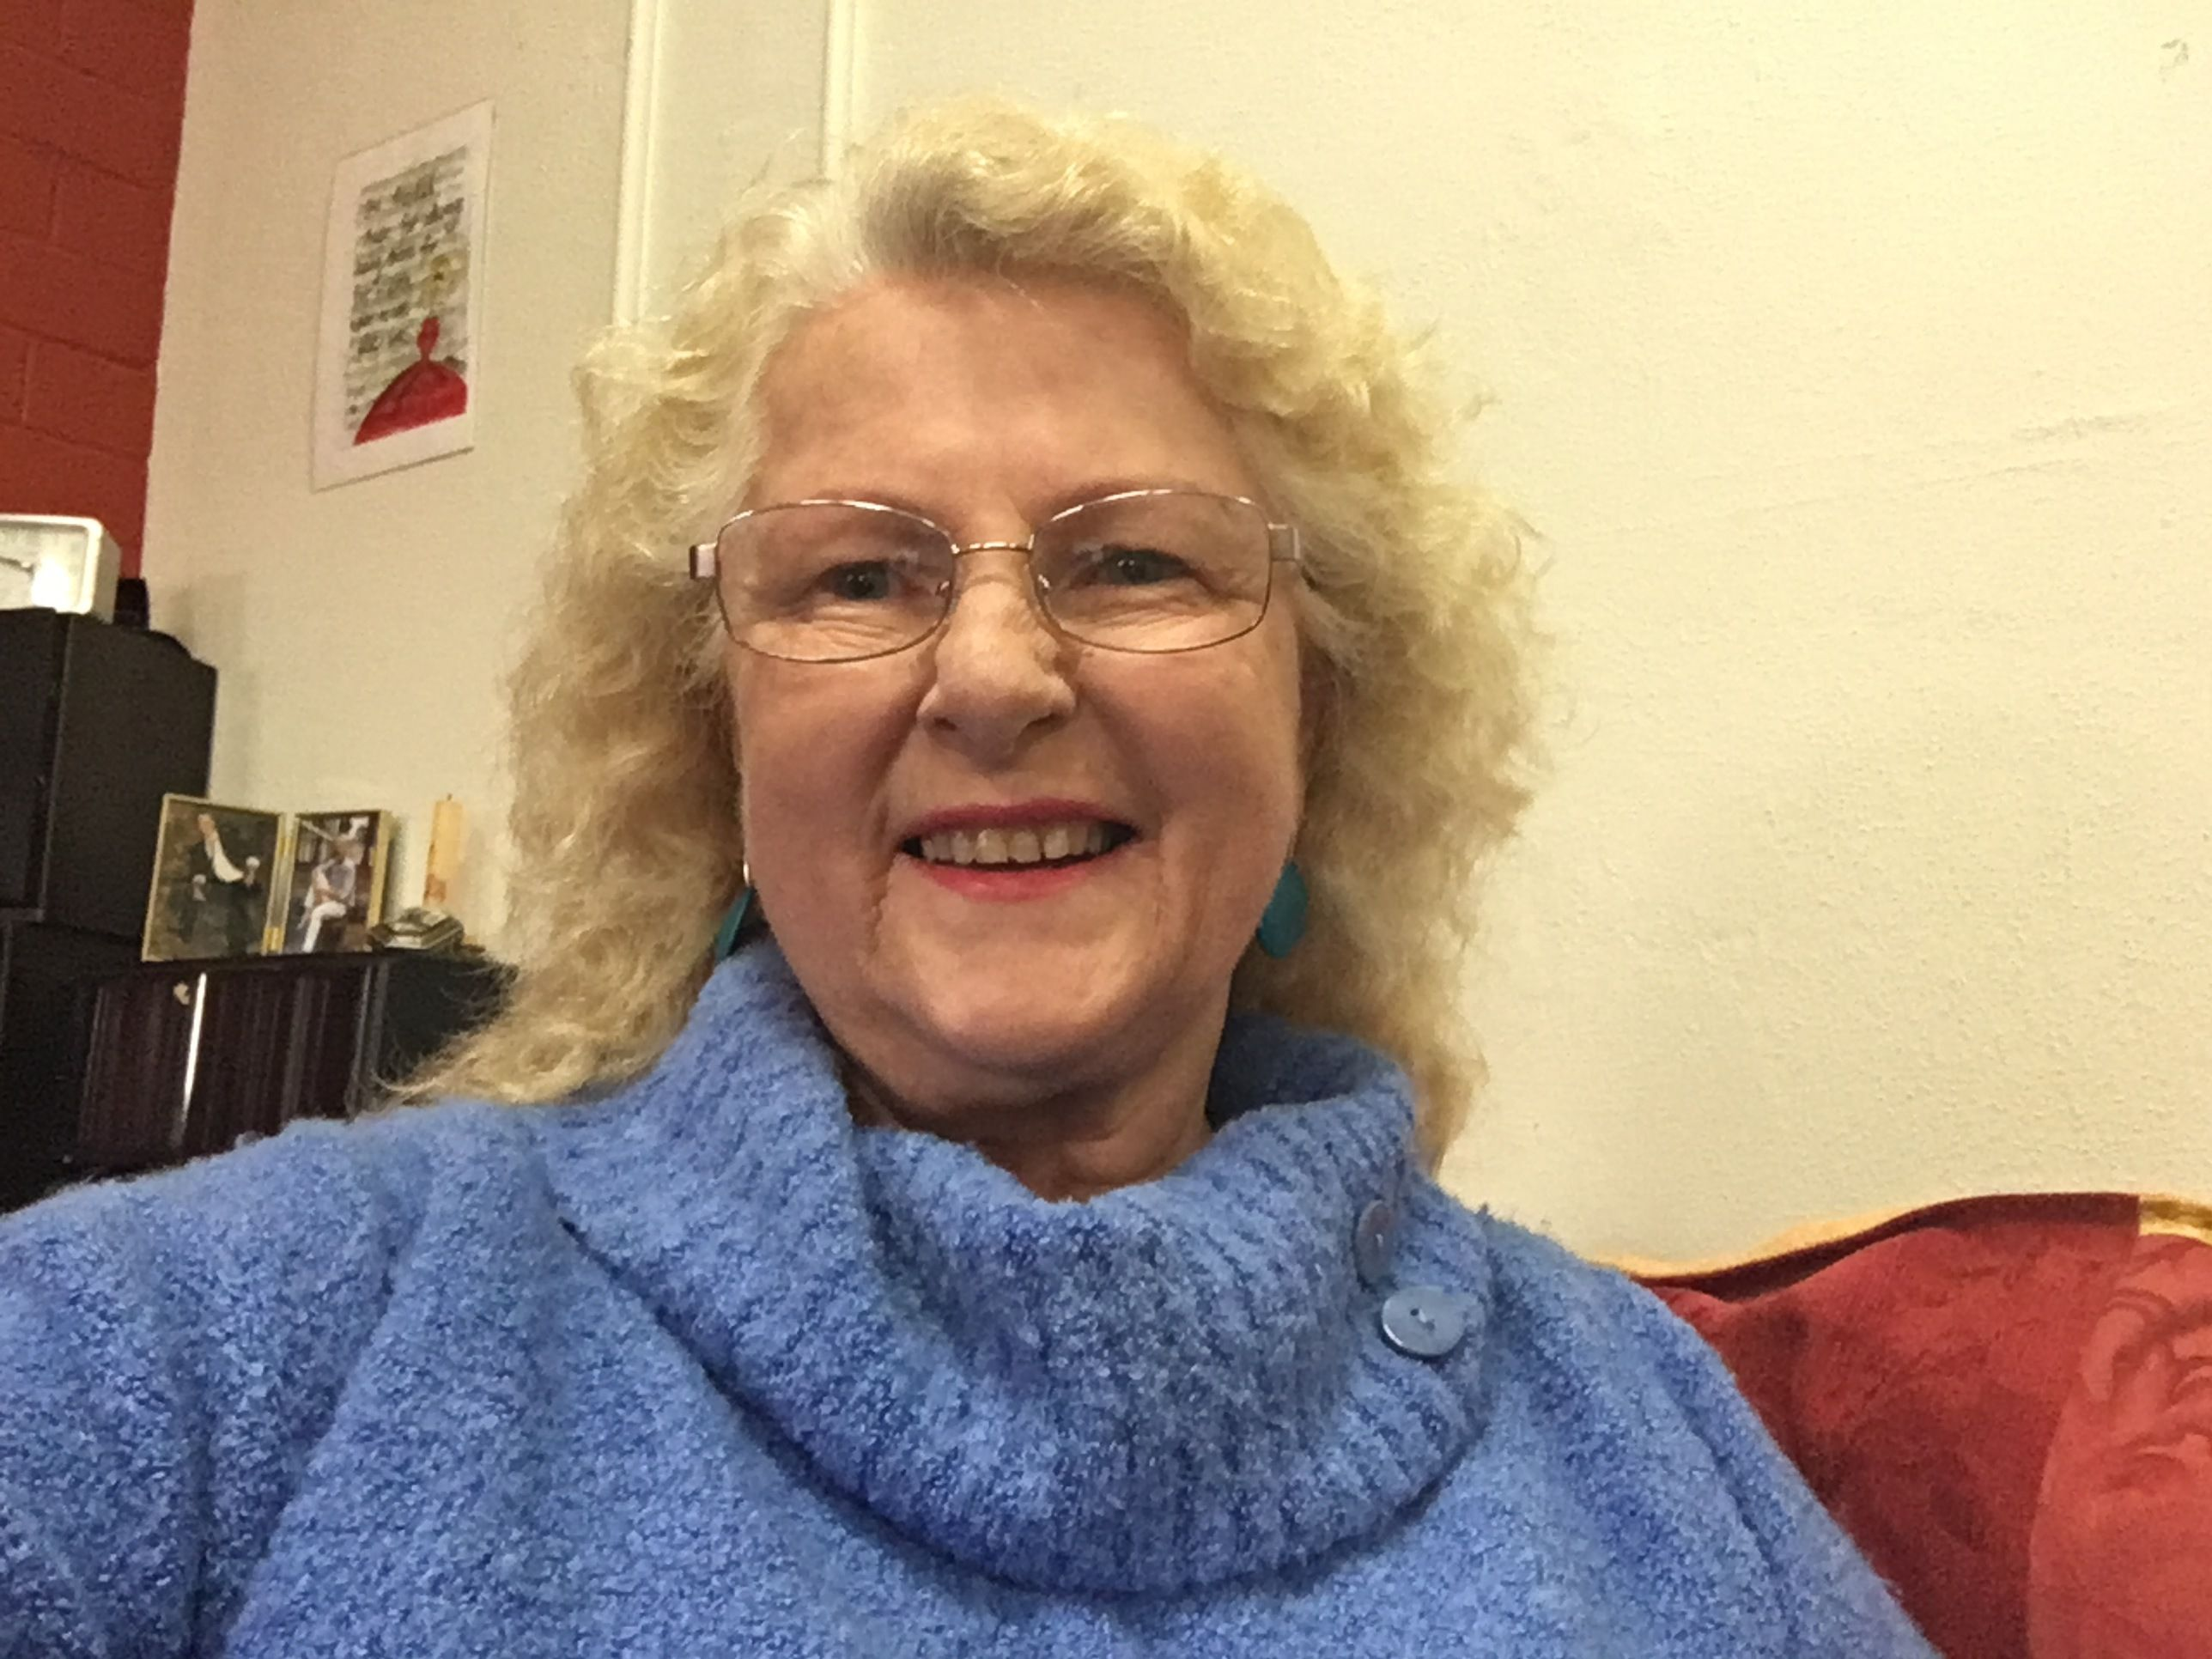 redcliffe single women Browse photo profiles & contact from redcliffe, redcliffe bribie caboolture, qld on  australia's #1 single women & single men site rsvp free to browse & join.